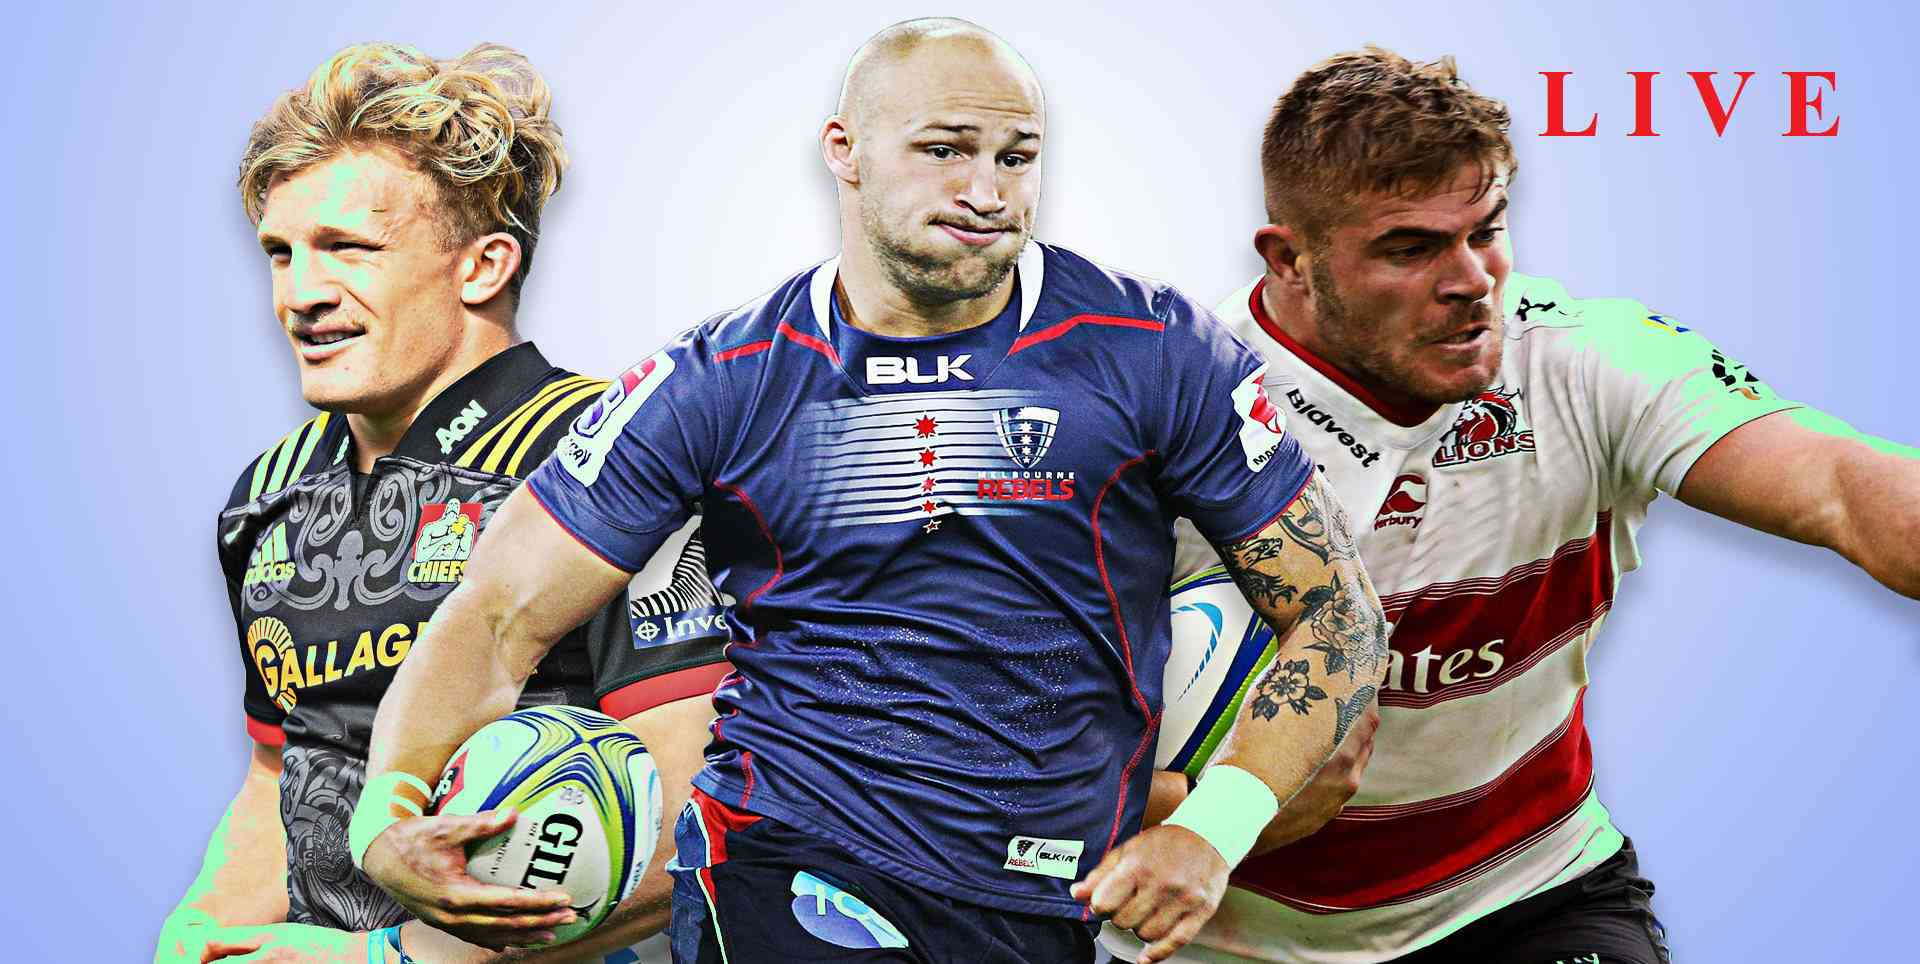 newcastle-vs-dragons-rugby-stream-live